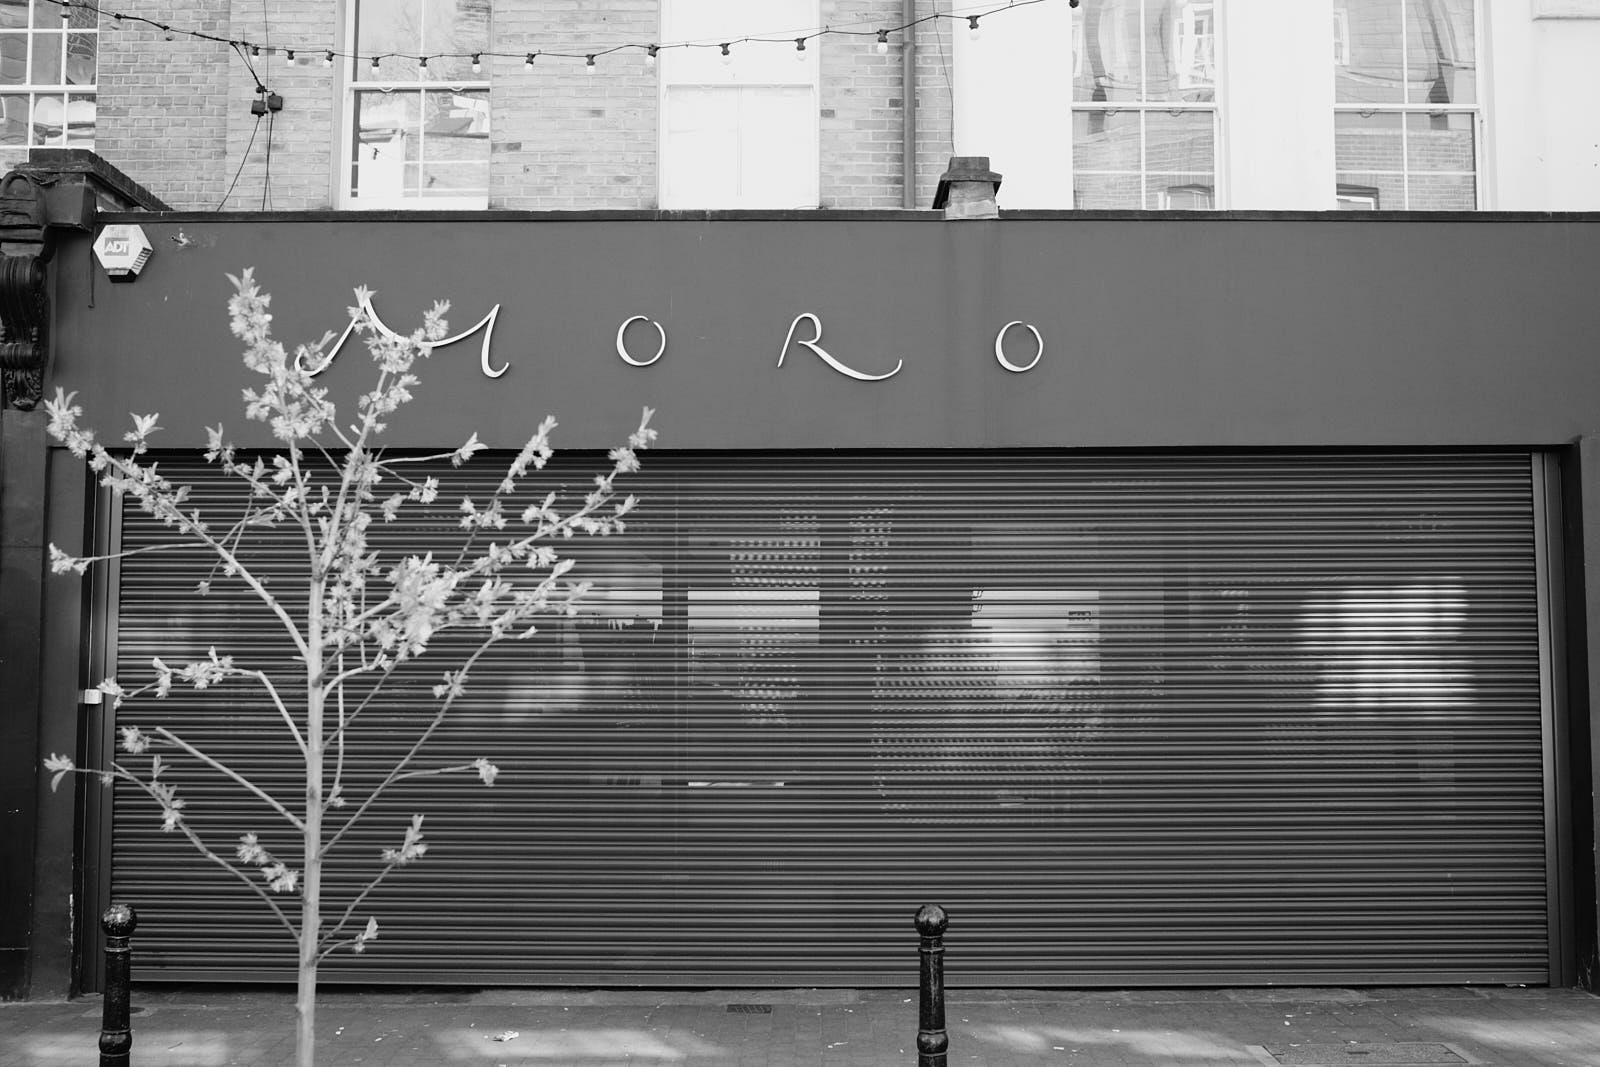 Moro, one of London's best restaurants, with its shutters down during COVID-19; the image is in black and white